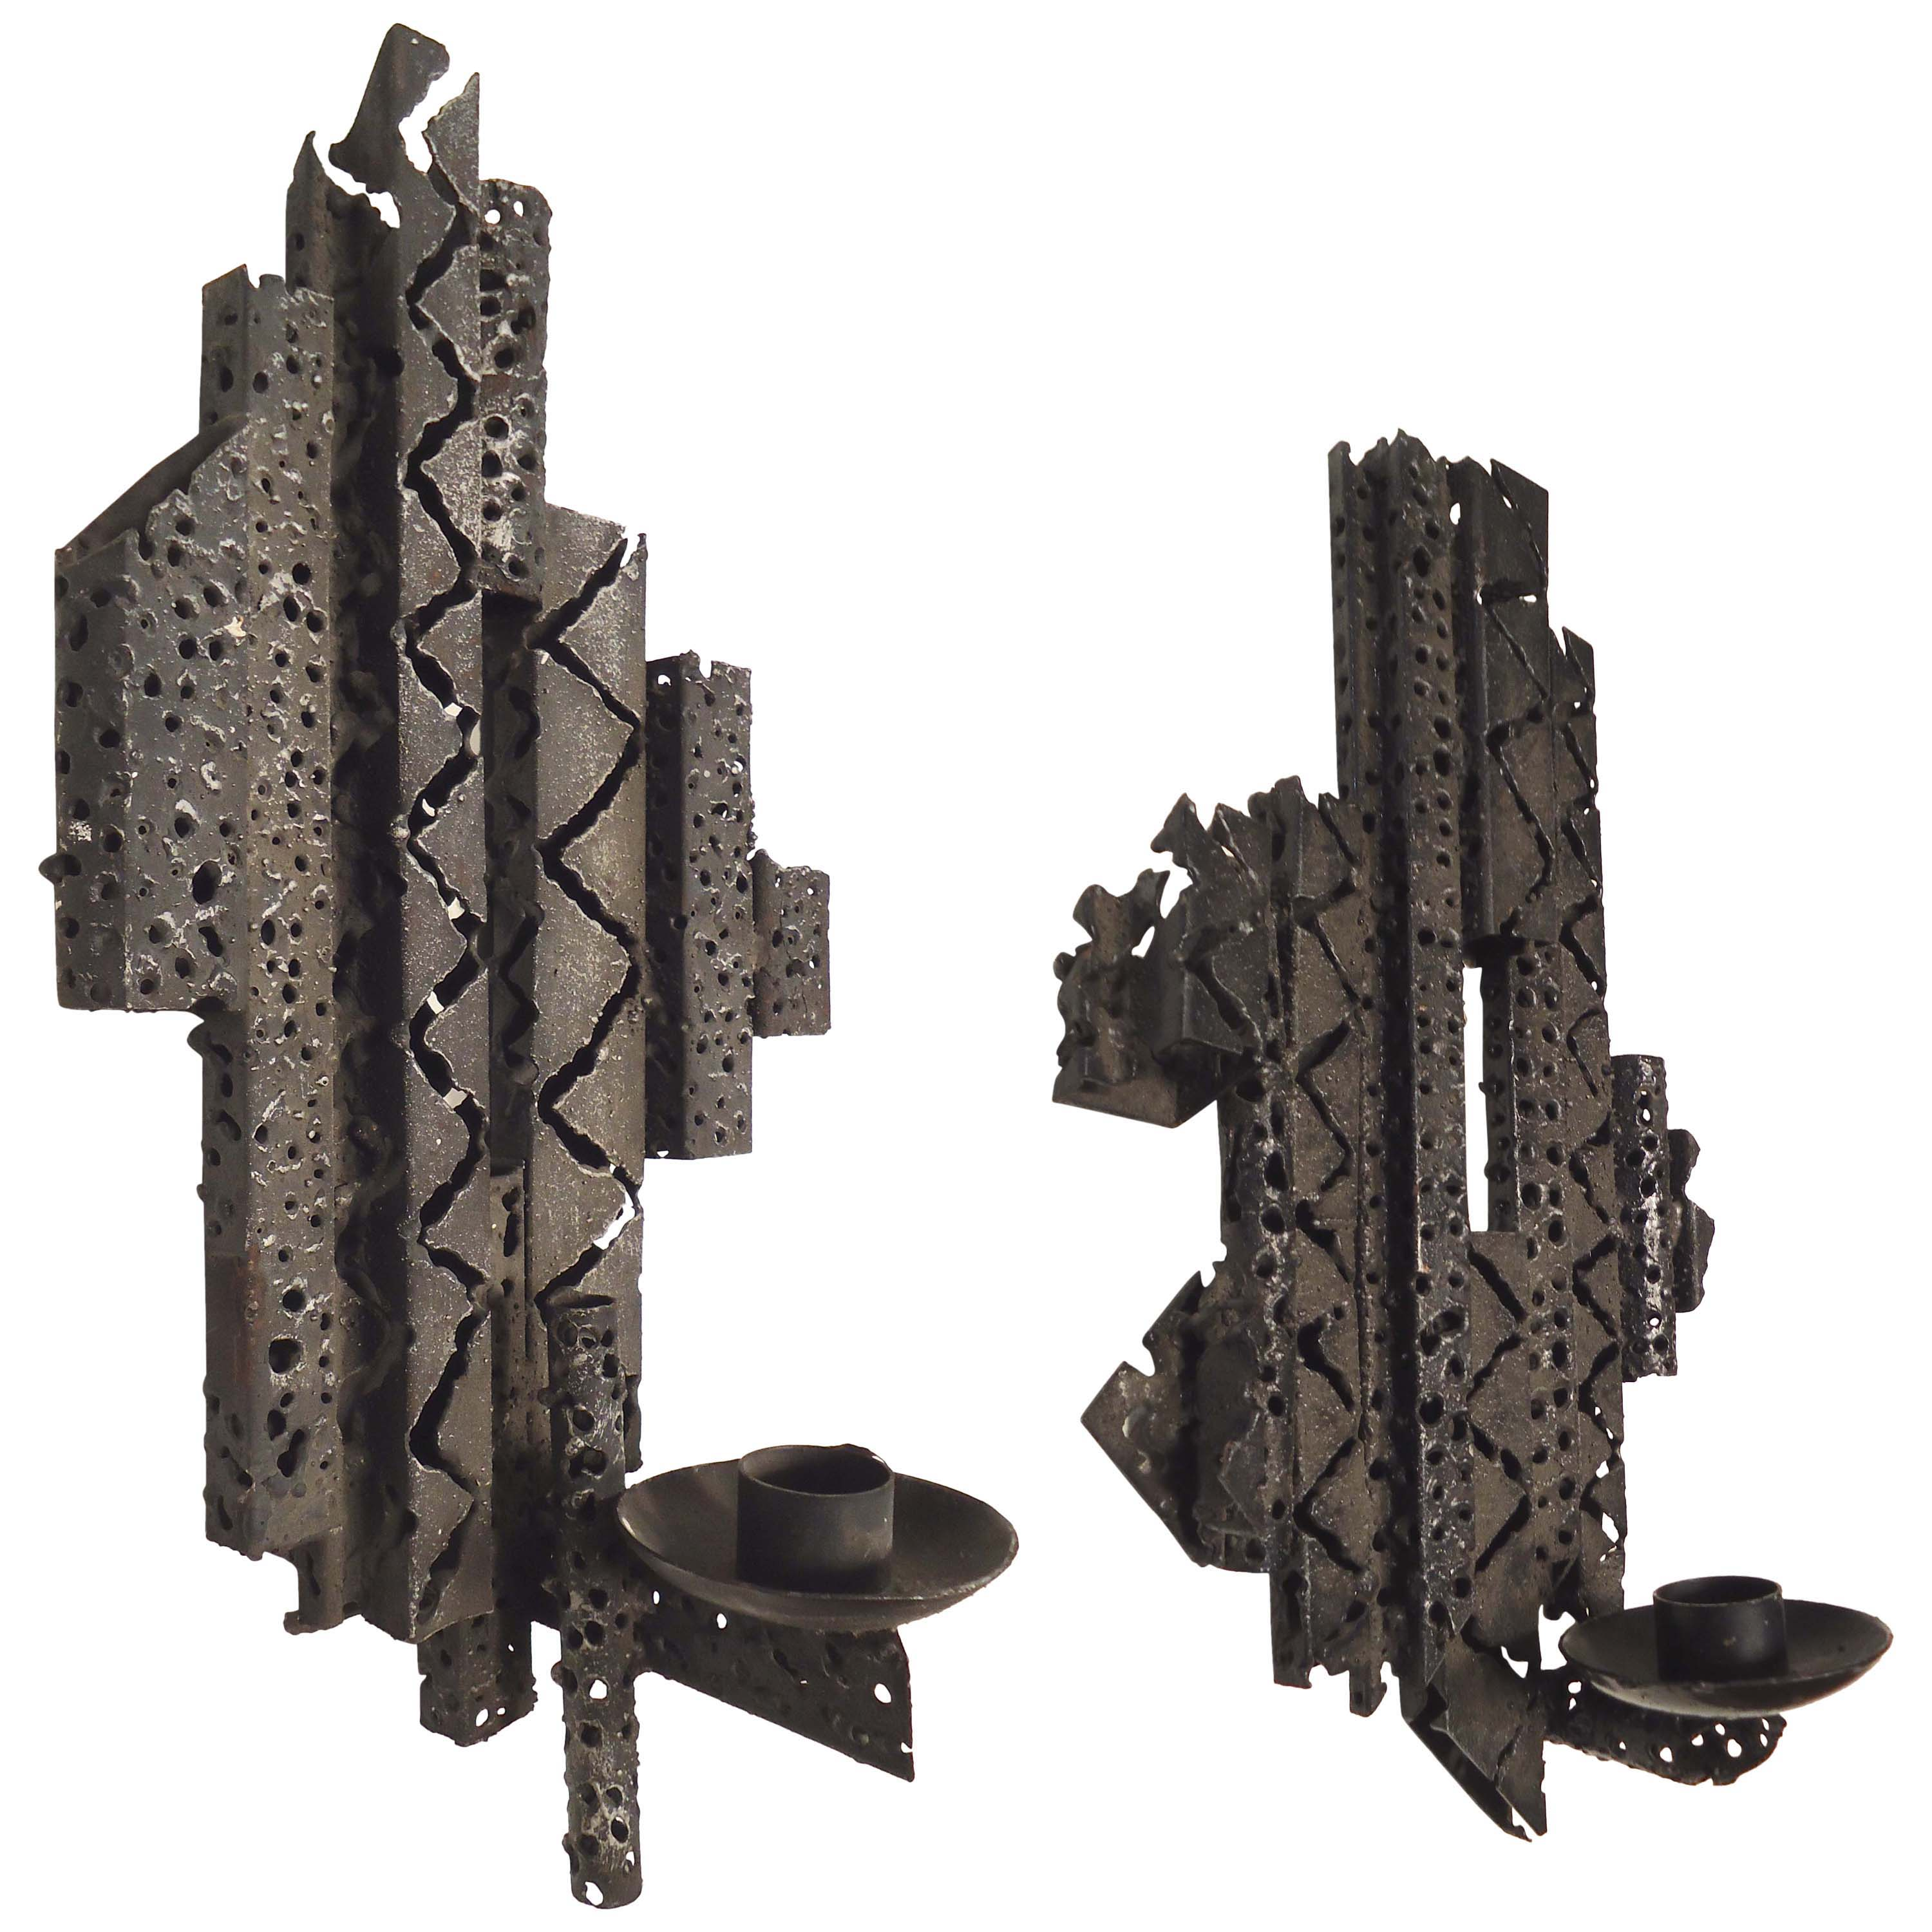 Brutalist Style Wall-Mounted Candleholders